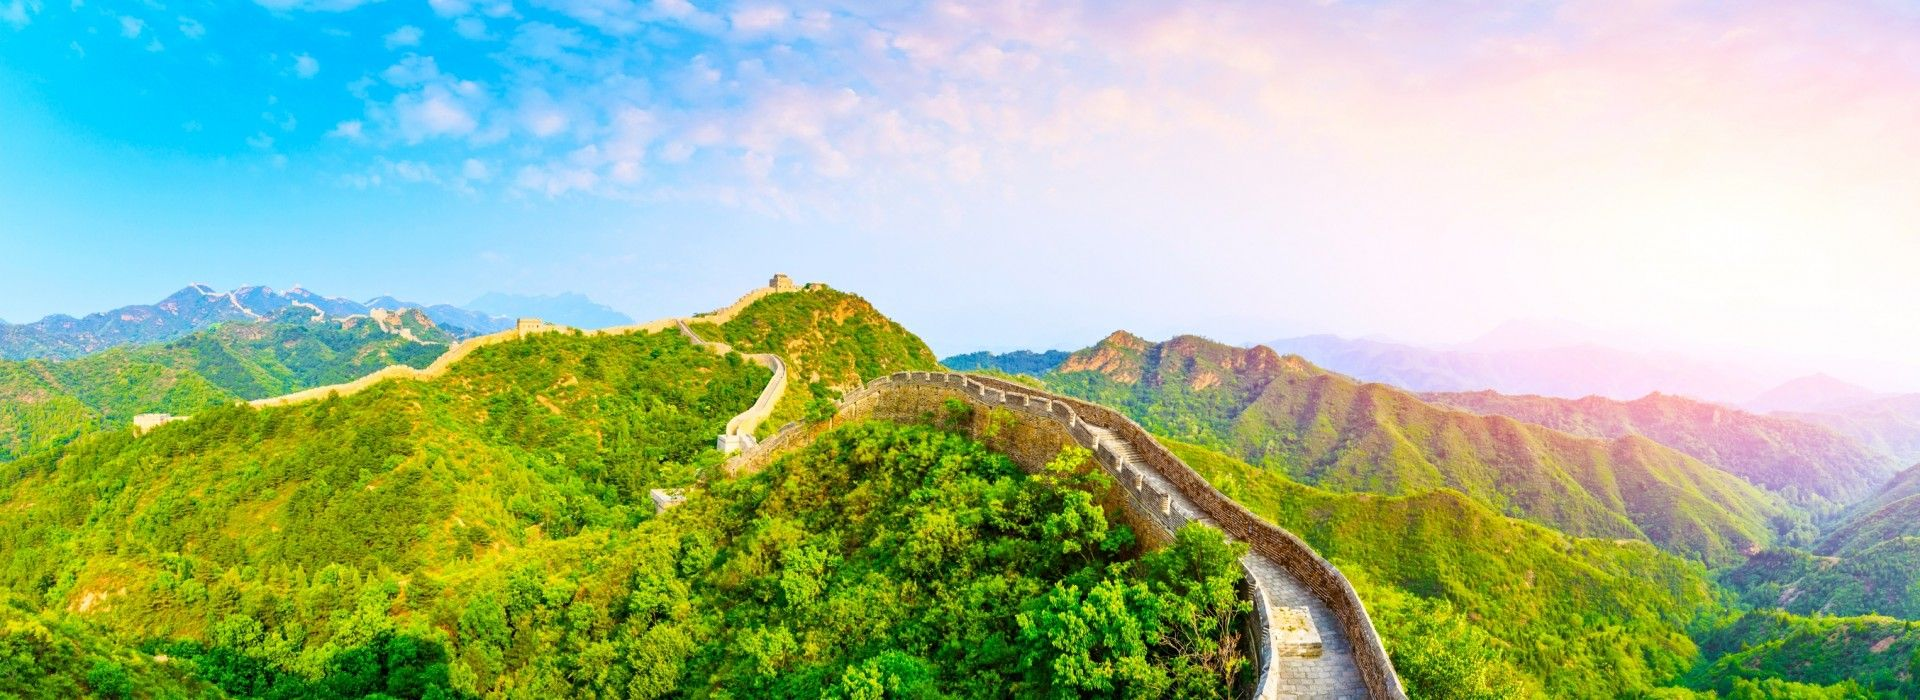 City sightseeing Tours in China